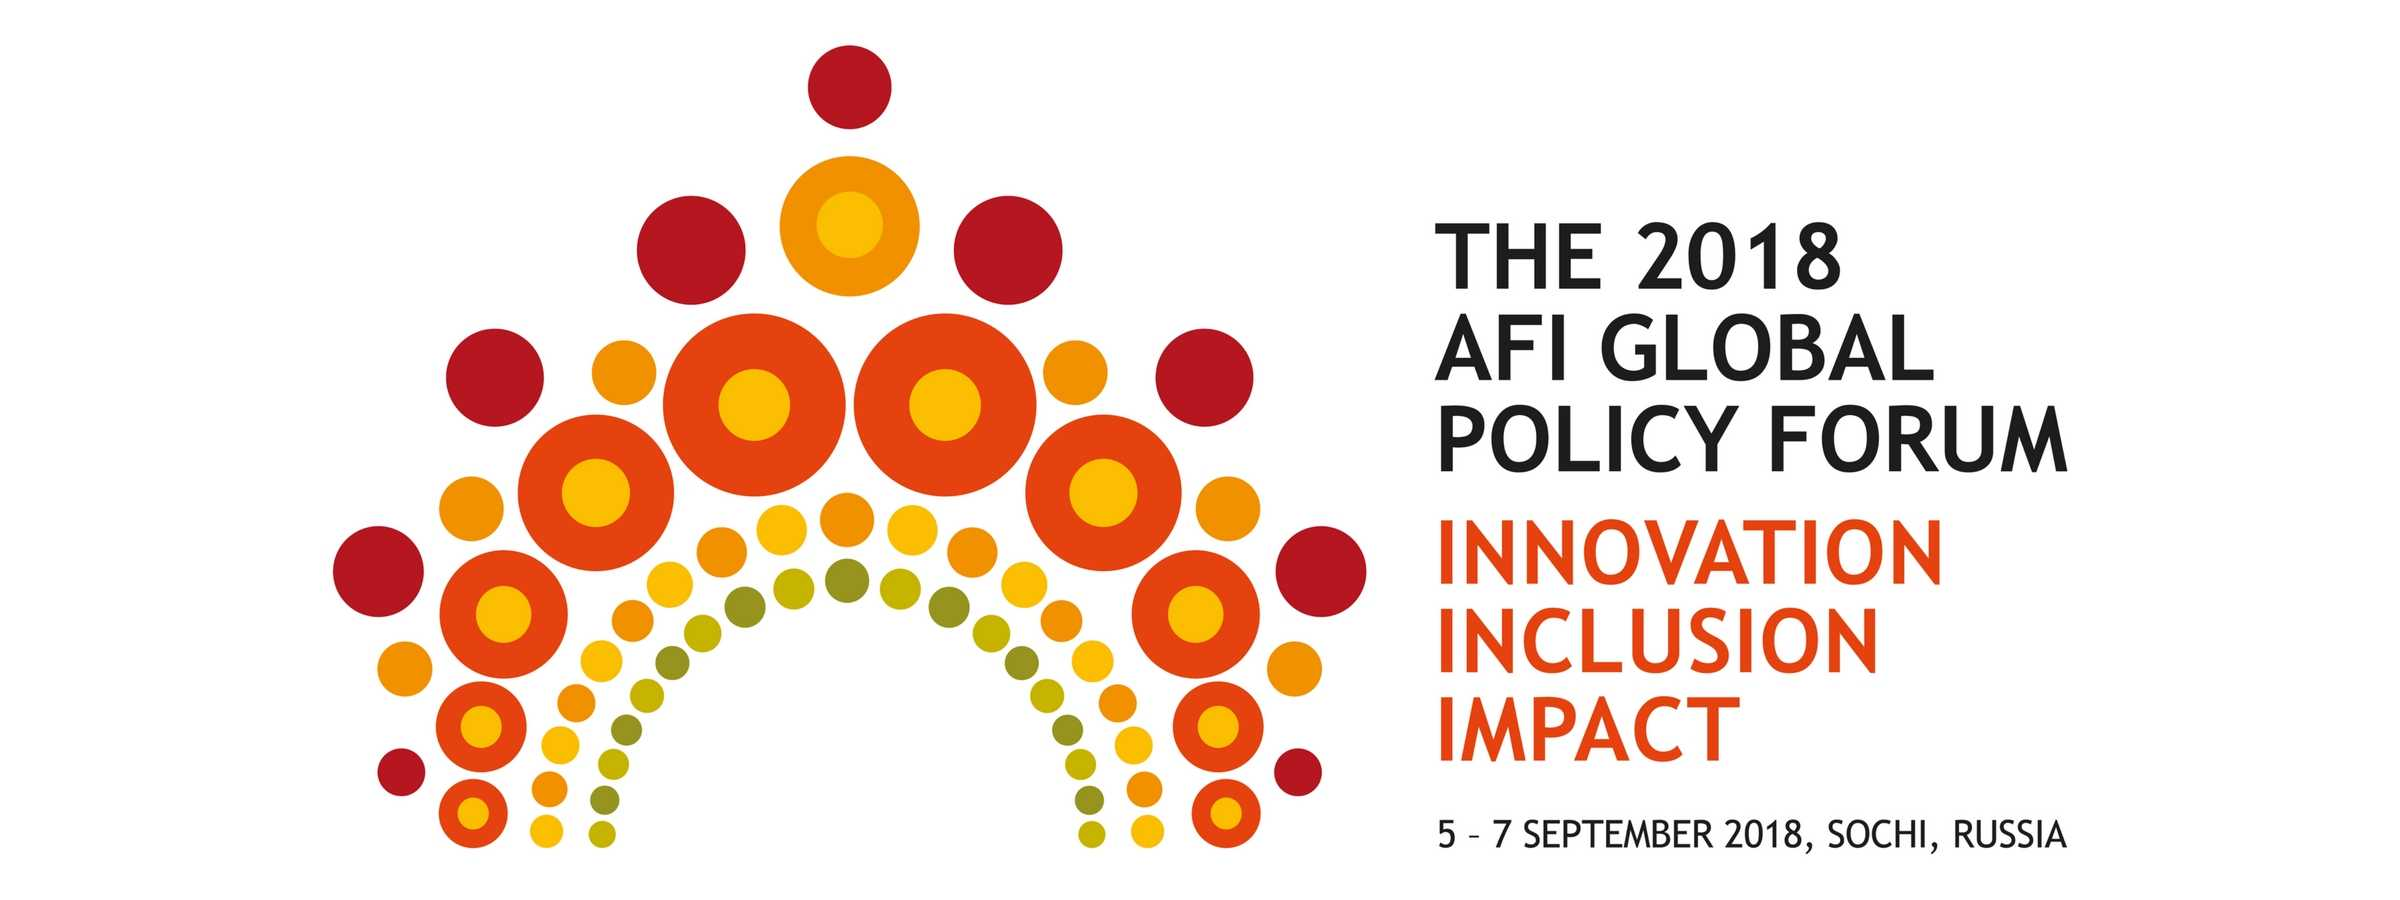 Diversity is an asset at the 2017 Global Policy Forum (GPF